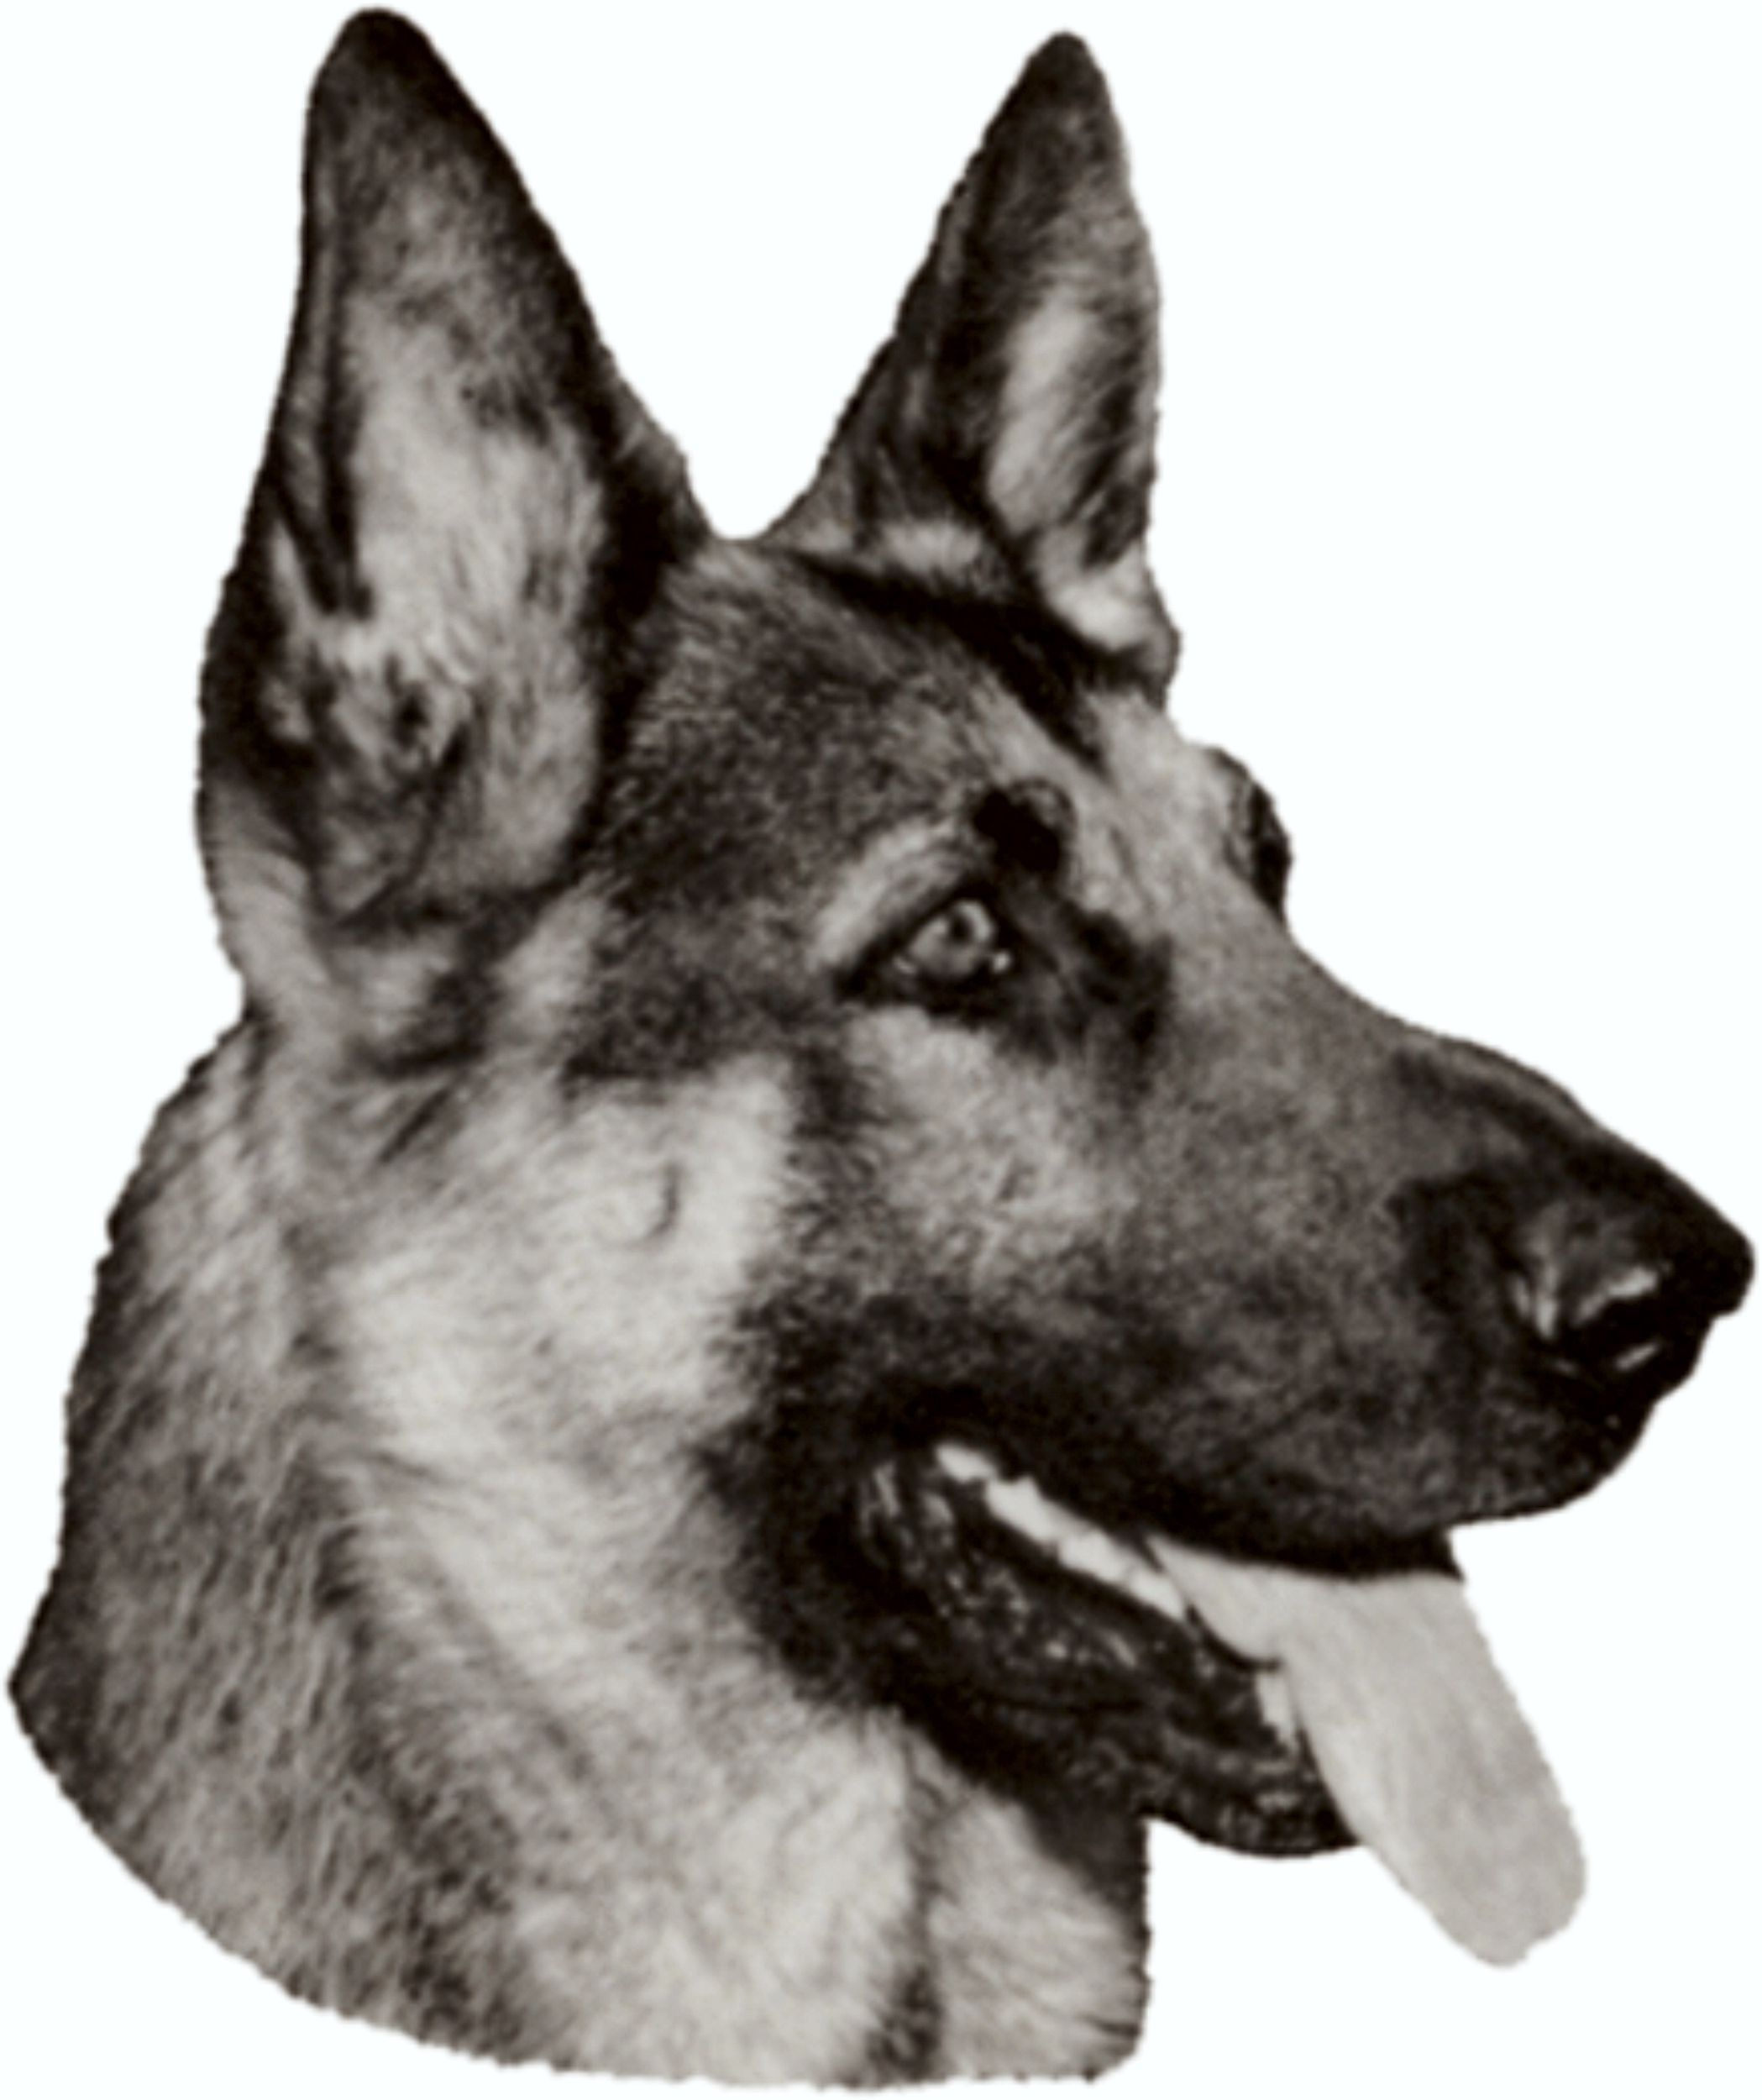 Sticker german shepherd 120 x 100 mm – Bild 1